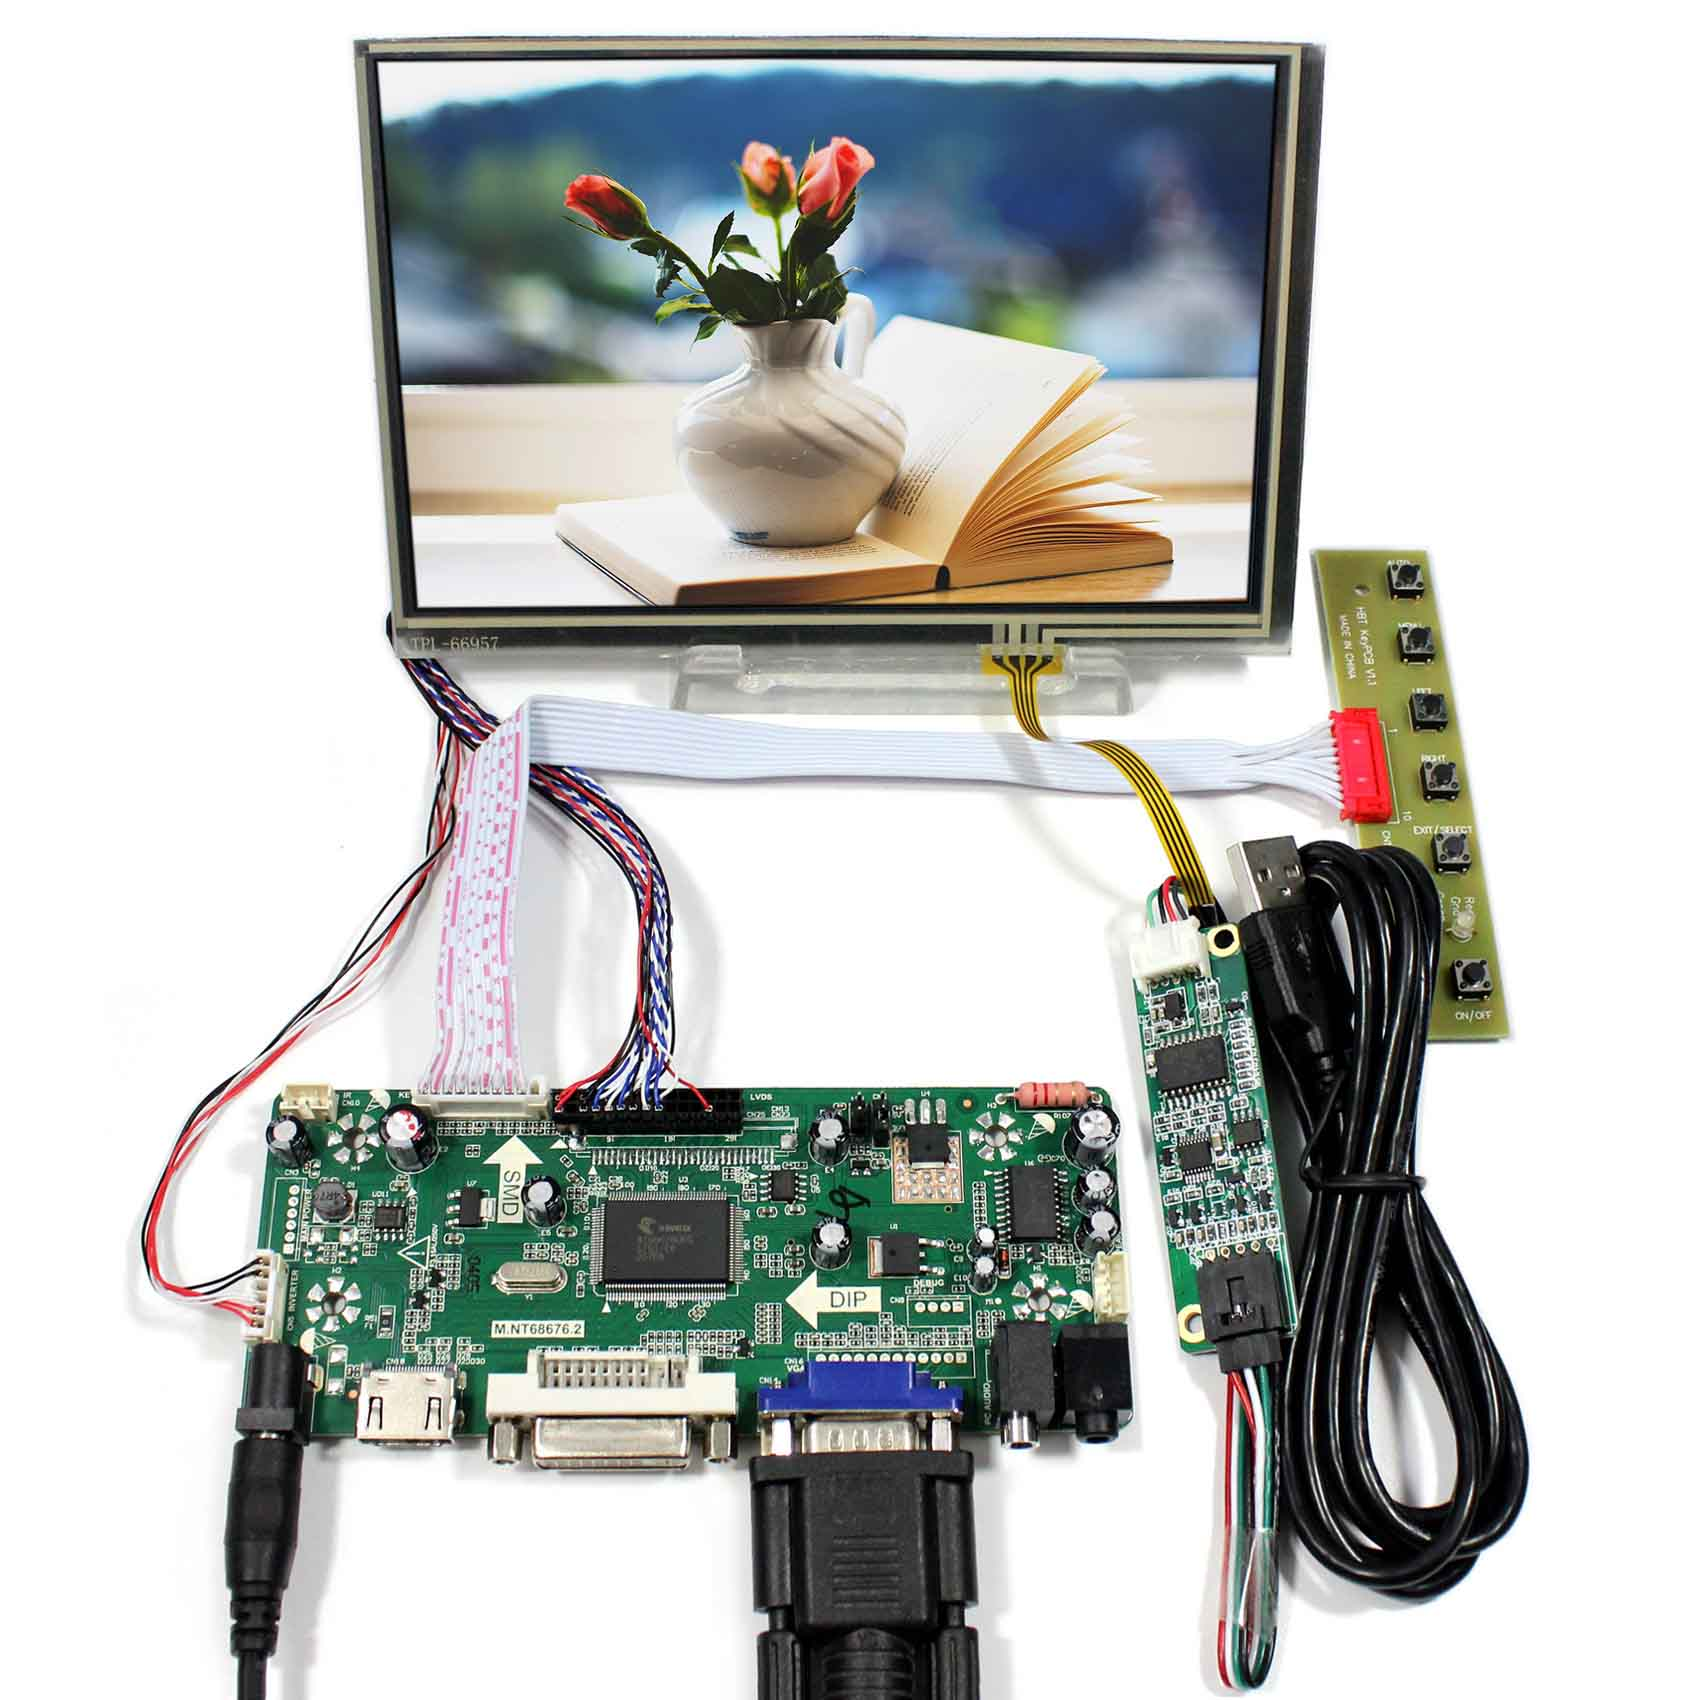 HDMI DVI VGA Audio LCD Controller Board With 7inch 1280x800 N070ICG-LD1 Touch LCD